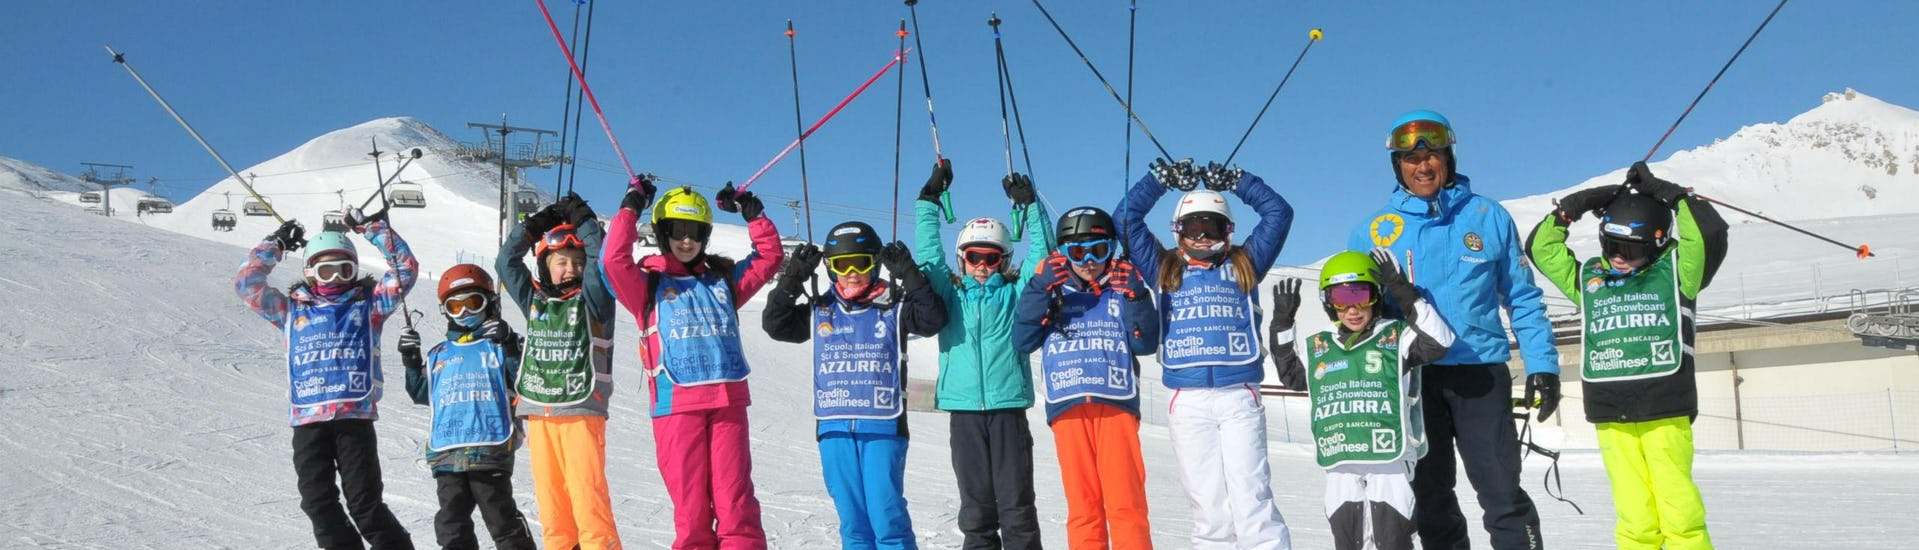 A group of children is enjoying their Kids Ski Lessons (4-14 y.) - Holidays - First Timer with the ski school Scuola di Sci Azzurra Livigno on the ski slopes of Livigno.